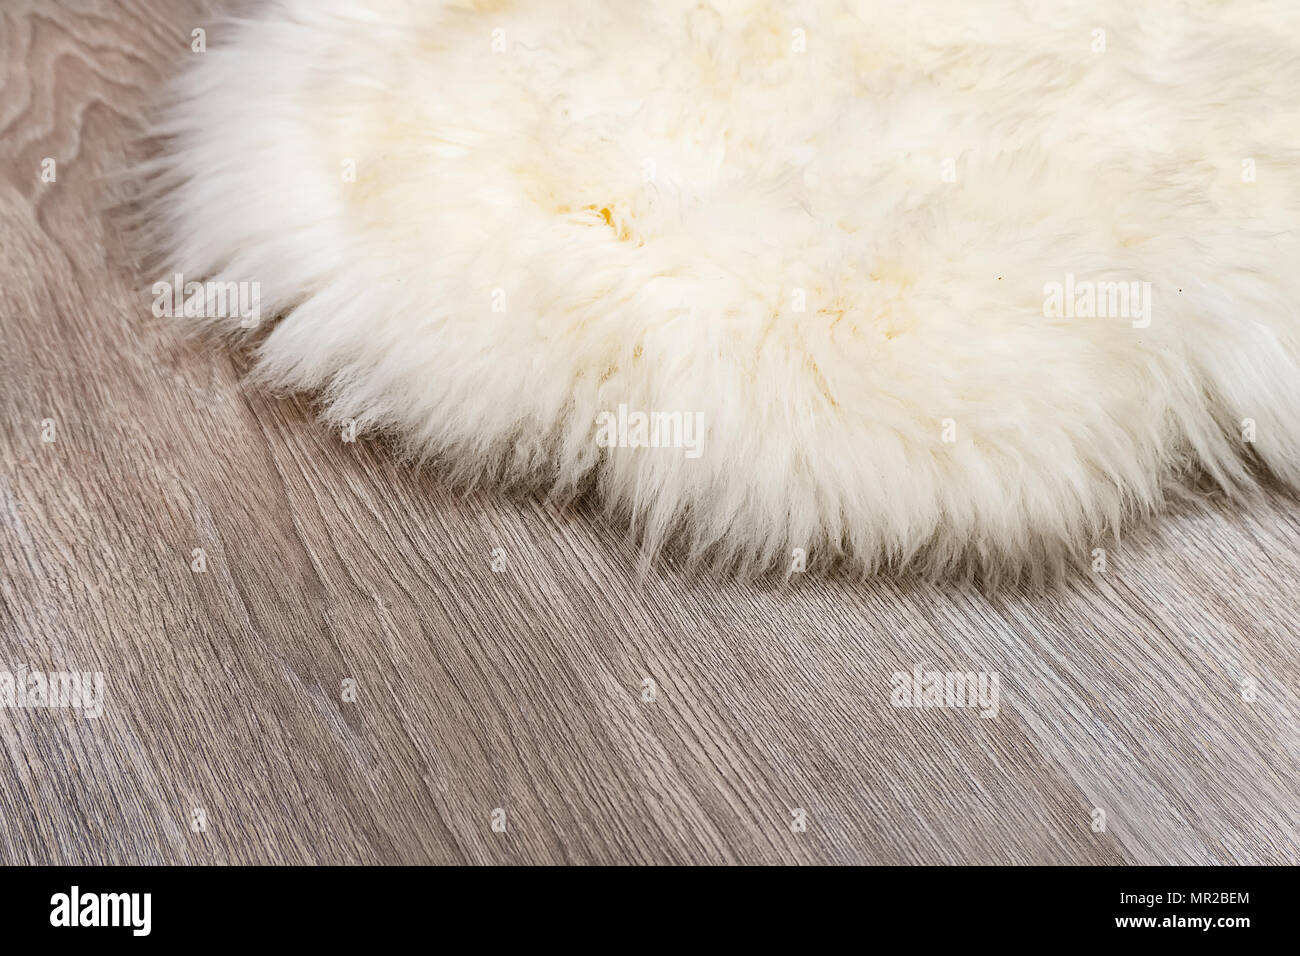 Decorative fur carpet on wood floor background. White animal skin on the parquet floor in the apartment. Mat made of natural rabbit skin. - Stock Image